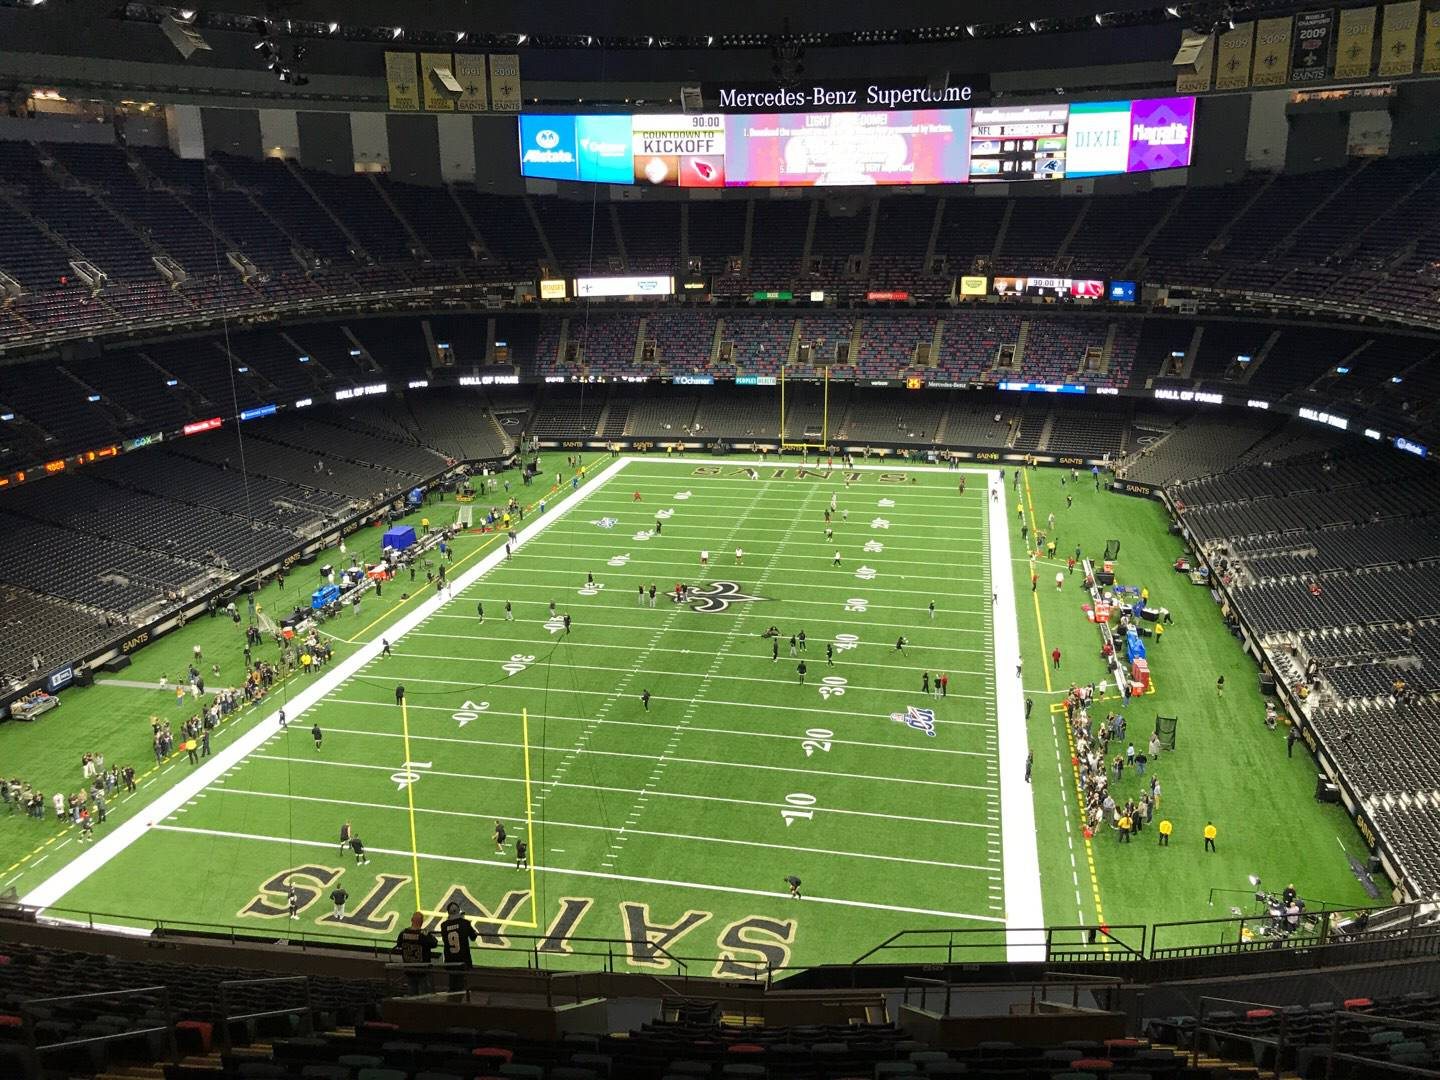 Mercedes-Benz Superdome Section 625 Row 21 Seat 11